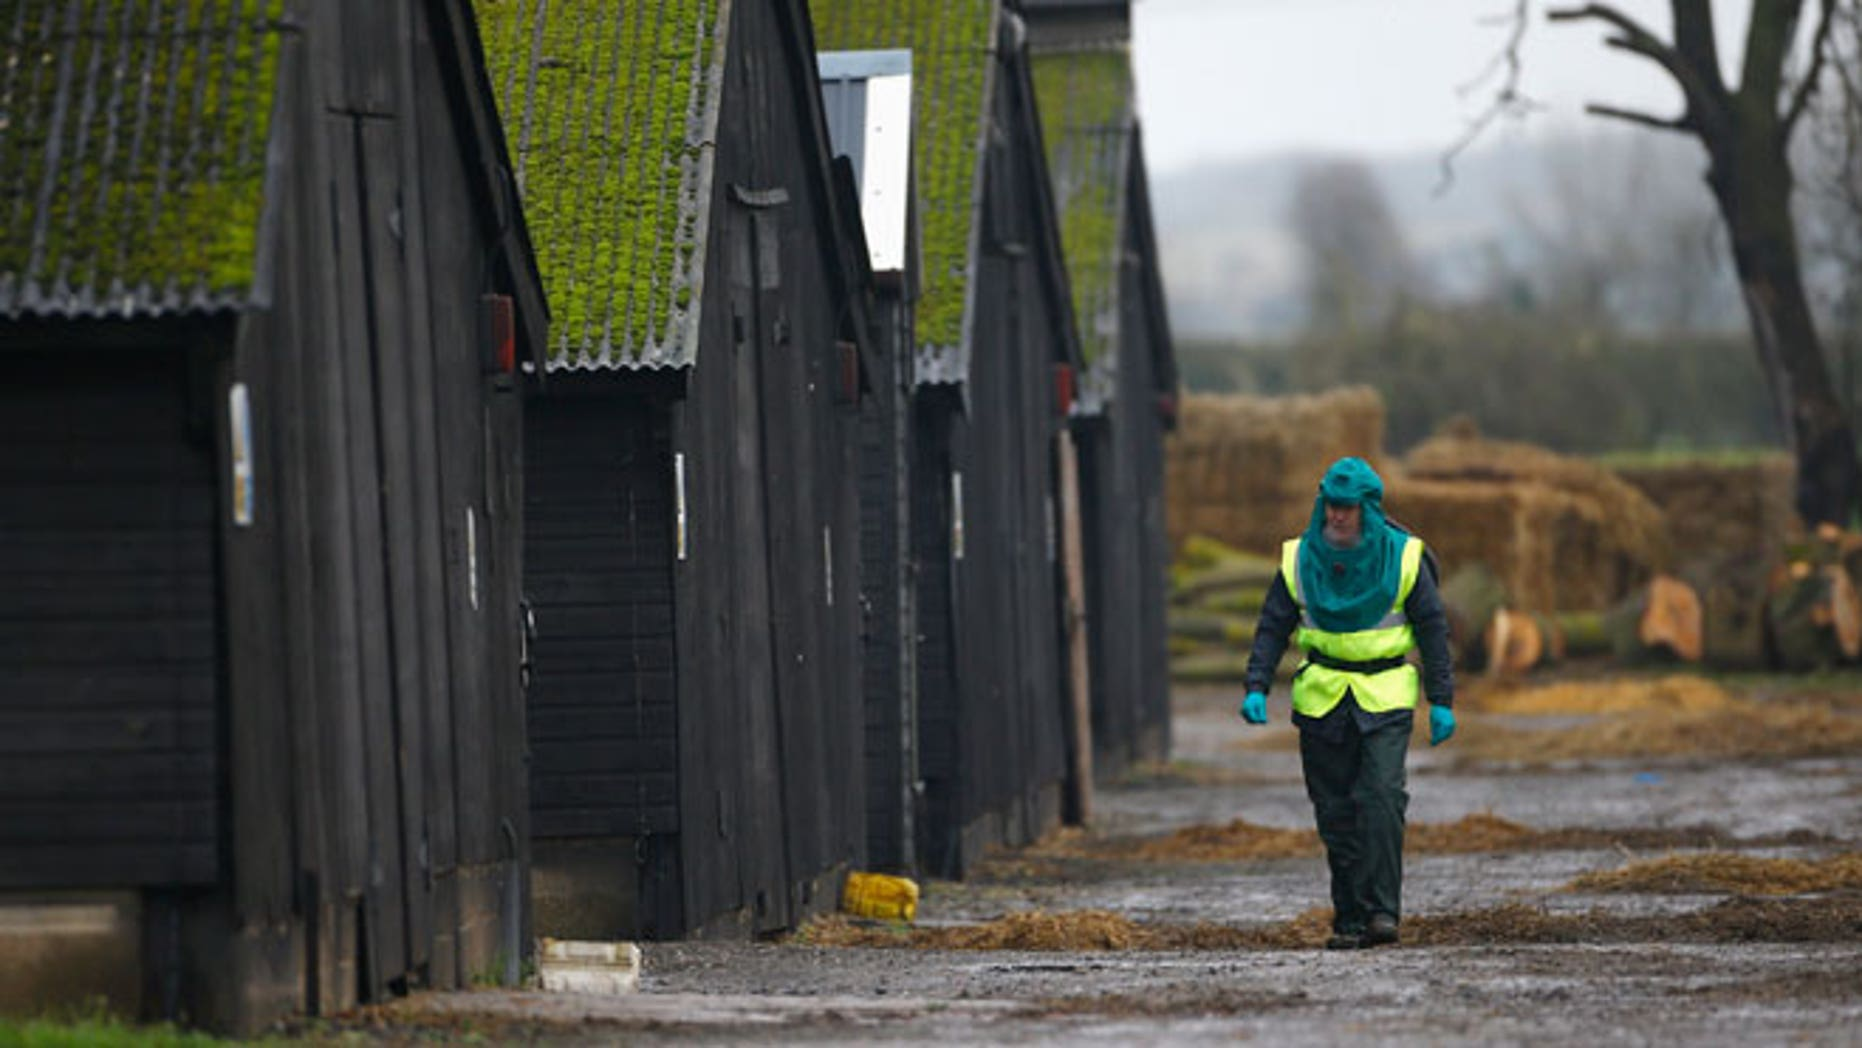 An official walks through a duck farm in Nafferton, northern England November 18, 2014. Bird flu was found on a duck farm in England on Monday days after it was discovered in Dutch chickens, forcing authorities to destroy poultry and restrict exports, although it was not a strain known to be deadly to humans. Health officials said the outbreak may have been brought to Europe by wild birds migrating from Asia where millions of South Korean farm birds have had to be destroyed.